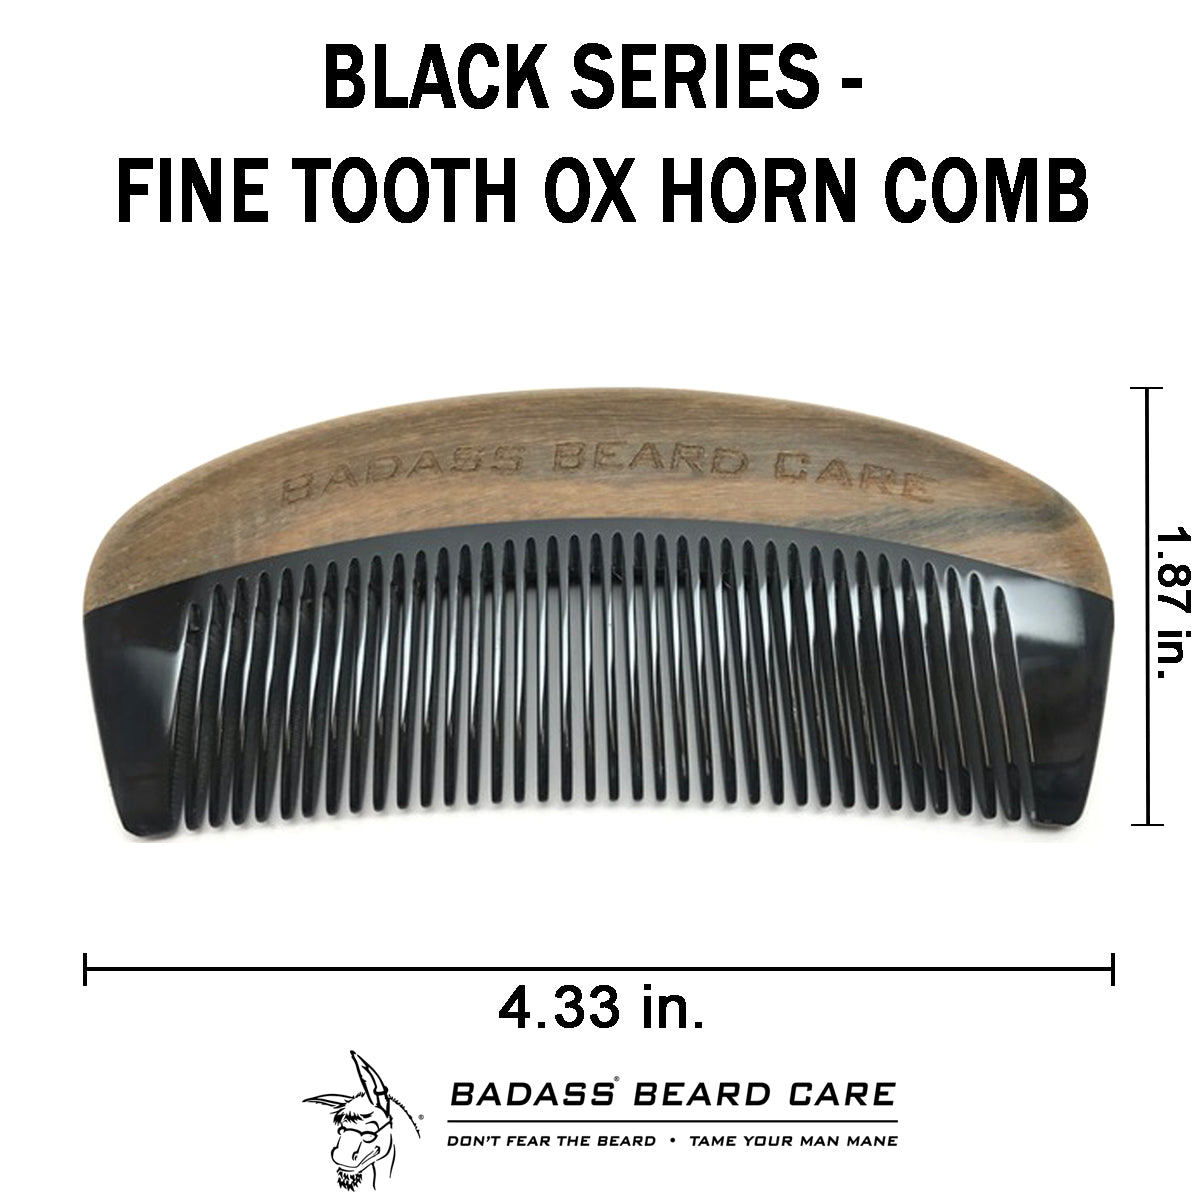 Black Series - Fine Tooth Ox Horn Comb